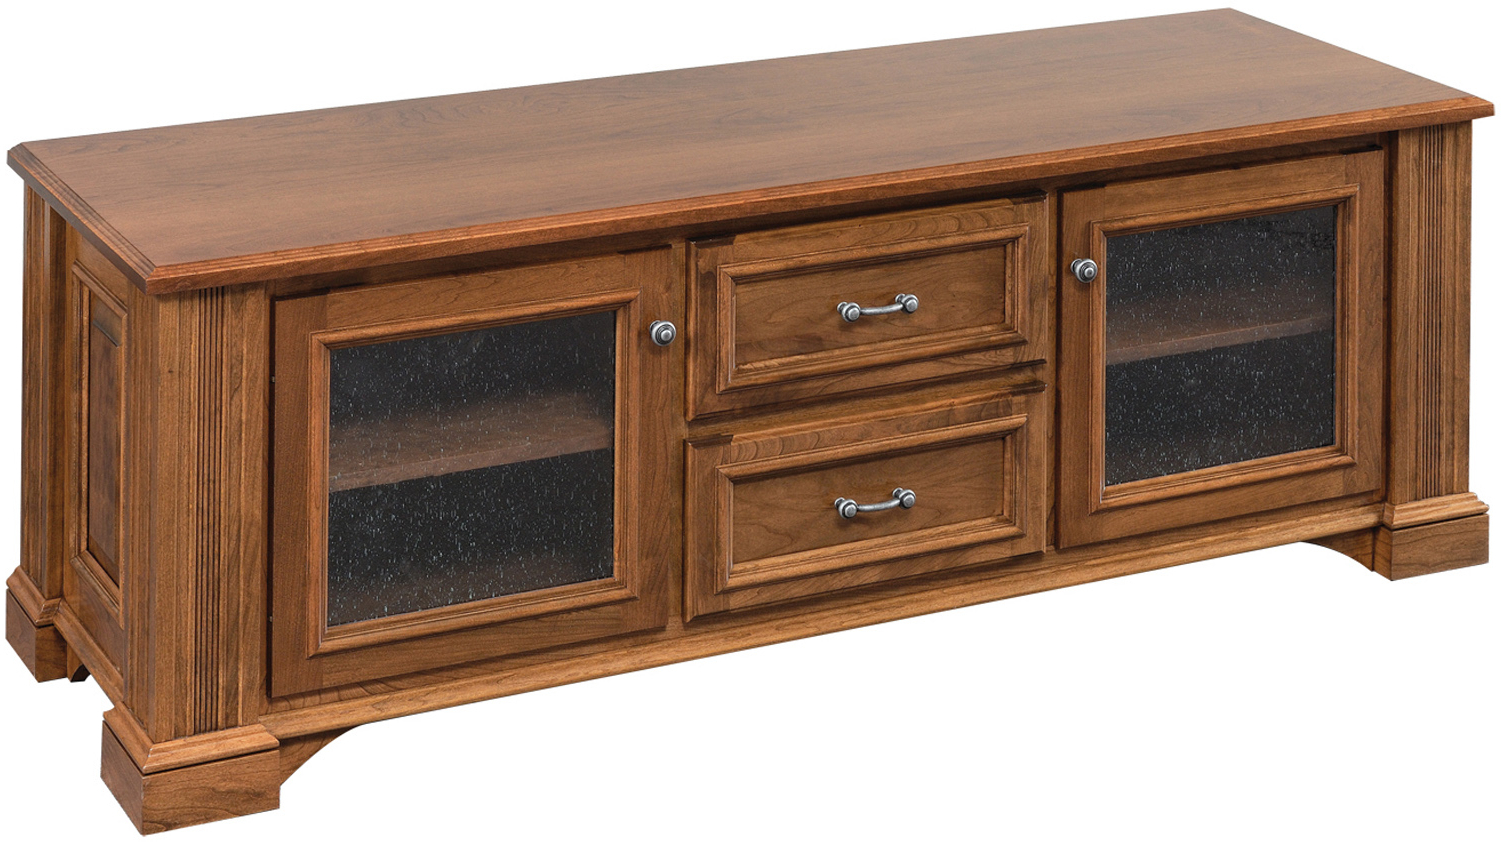 Amish Solid Hardwood Tv (View 3 of 10)